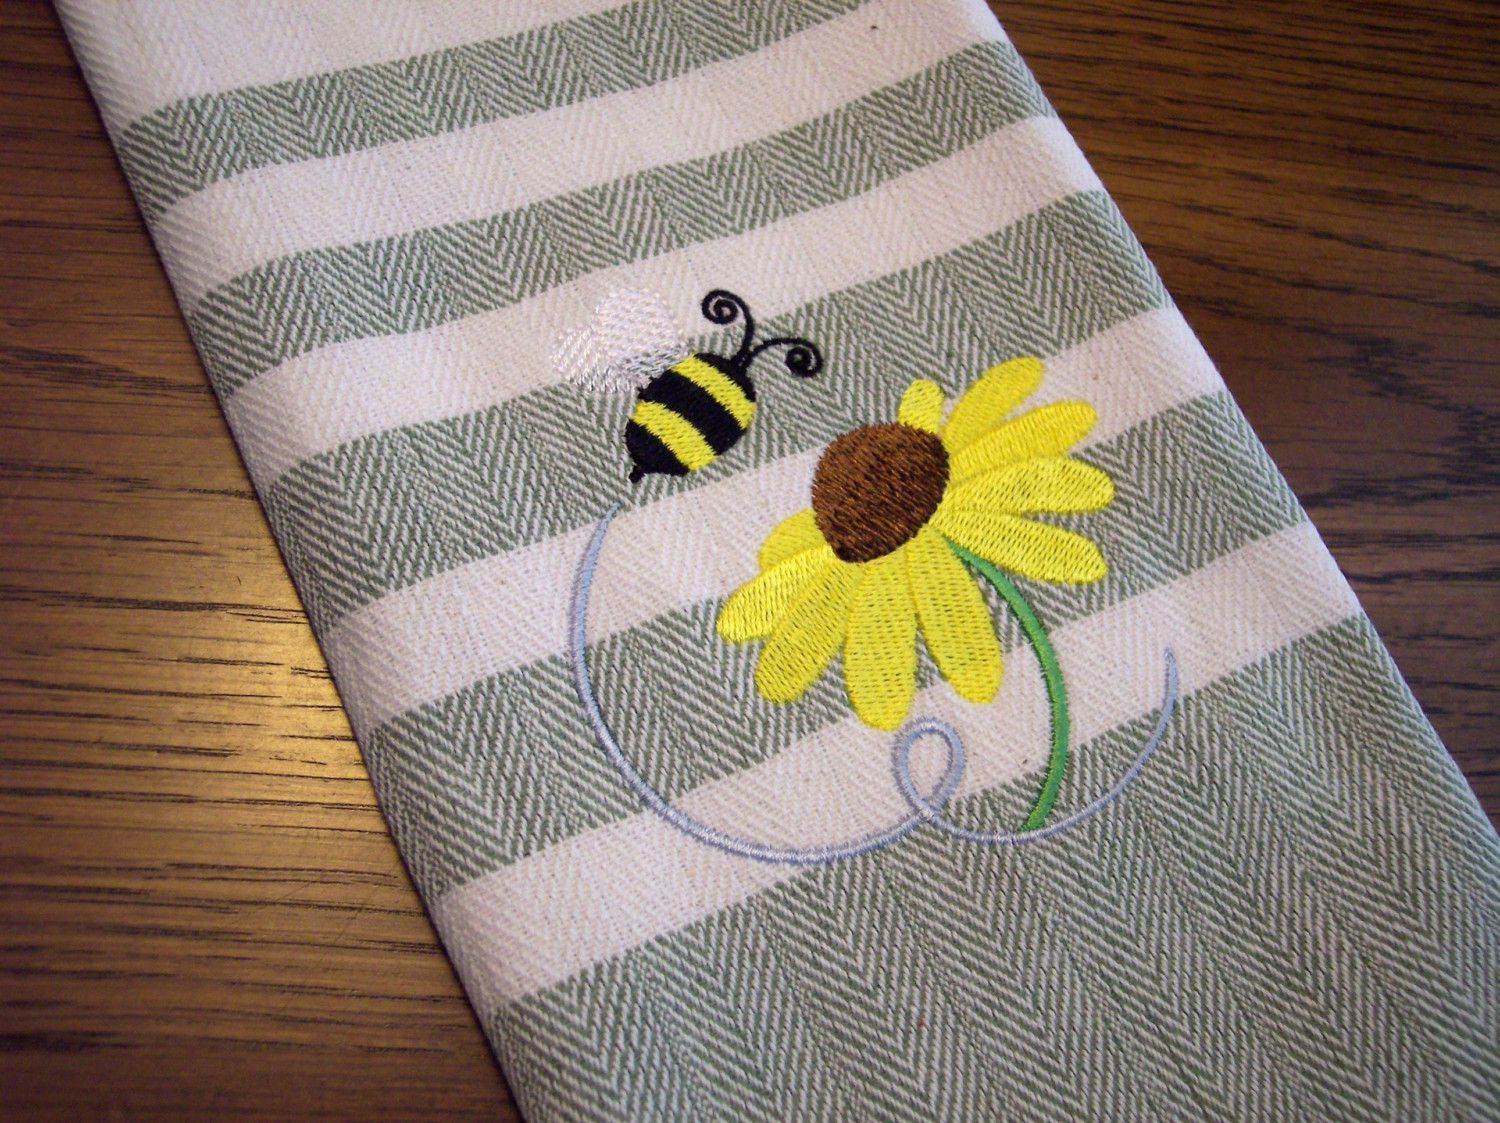 Buzzing Bumble Bee Kitchen Towel | Bumble bees, Bees and Towels